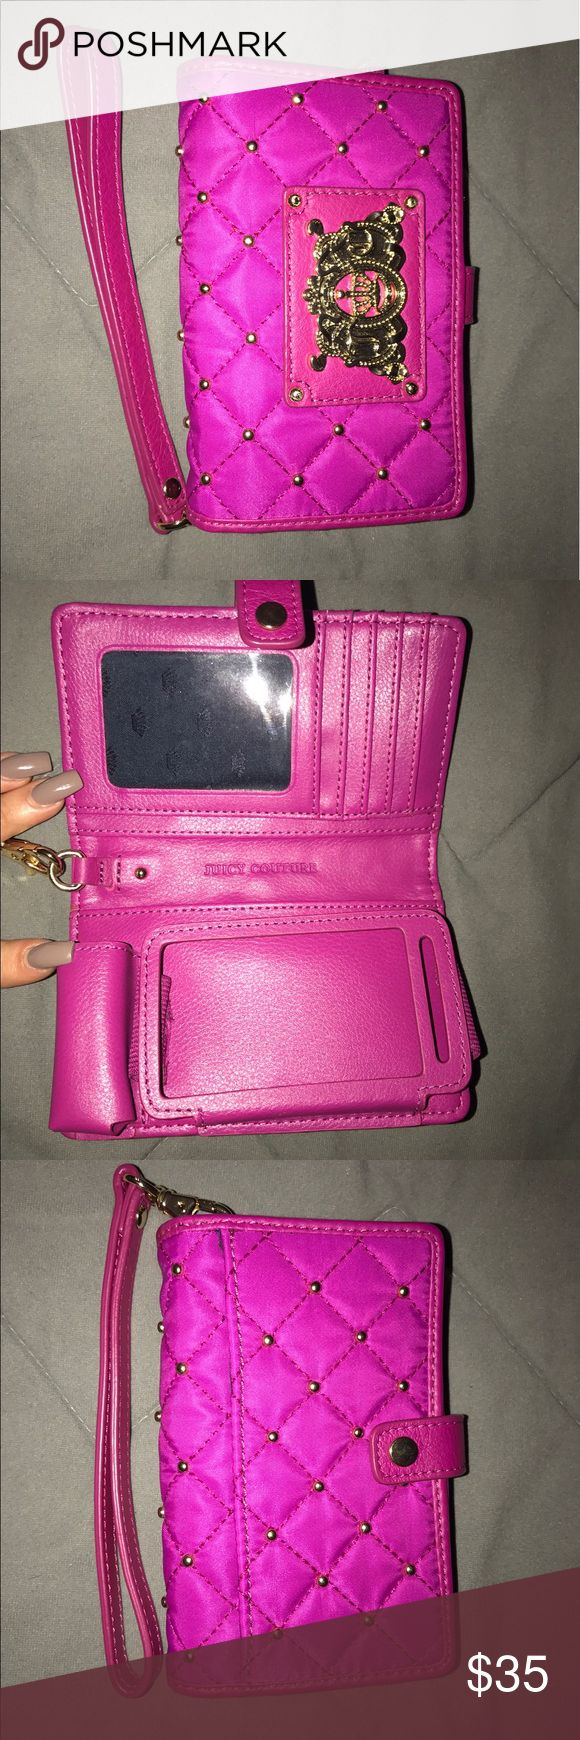 Juicy Couture iPhone 4/4s Wallet Case Pink wallet & iPhone case. Fits an iPhone 4/4s. Room for a lipstick or chap stick inside, along with 4 card slot & an ID. Juicy Couture Accessories Phone Cases